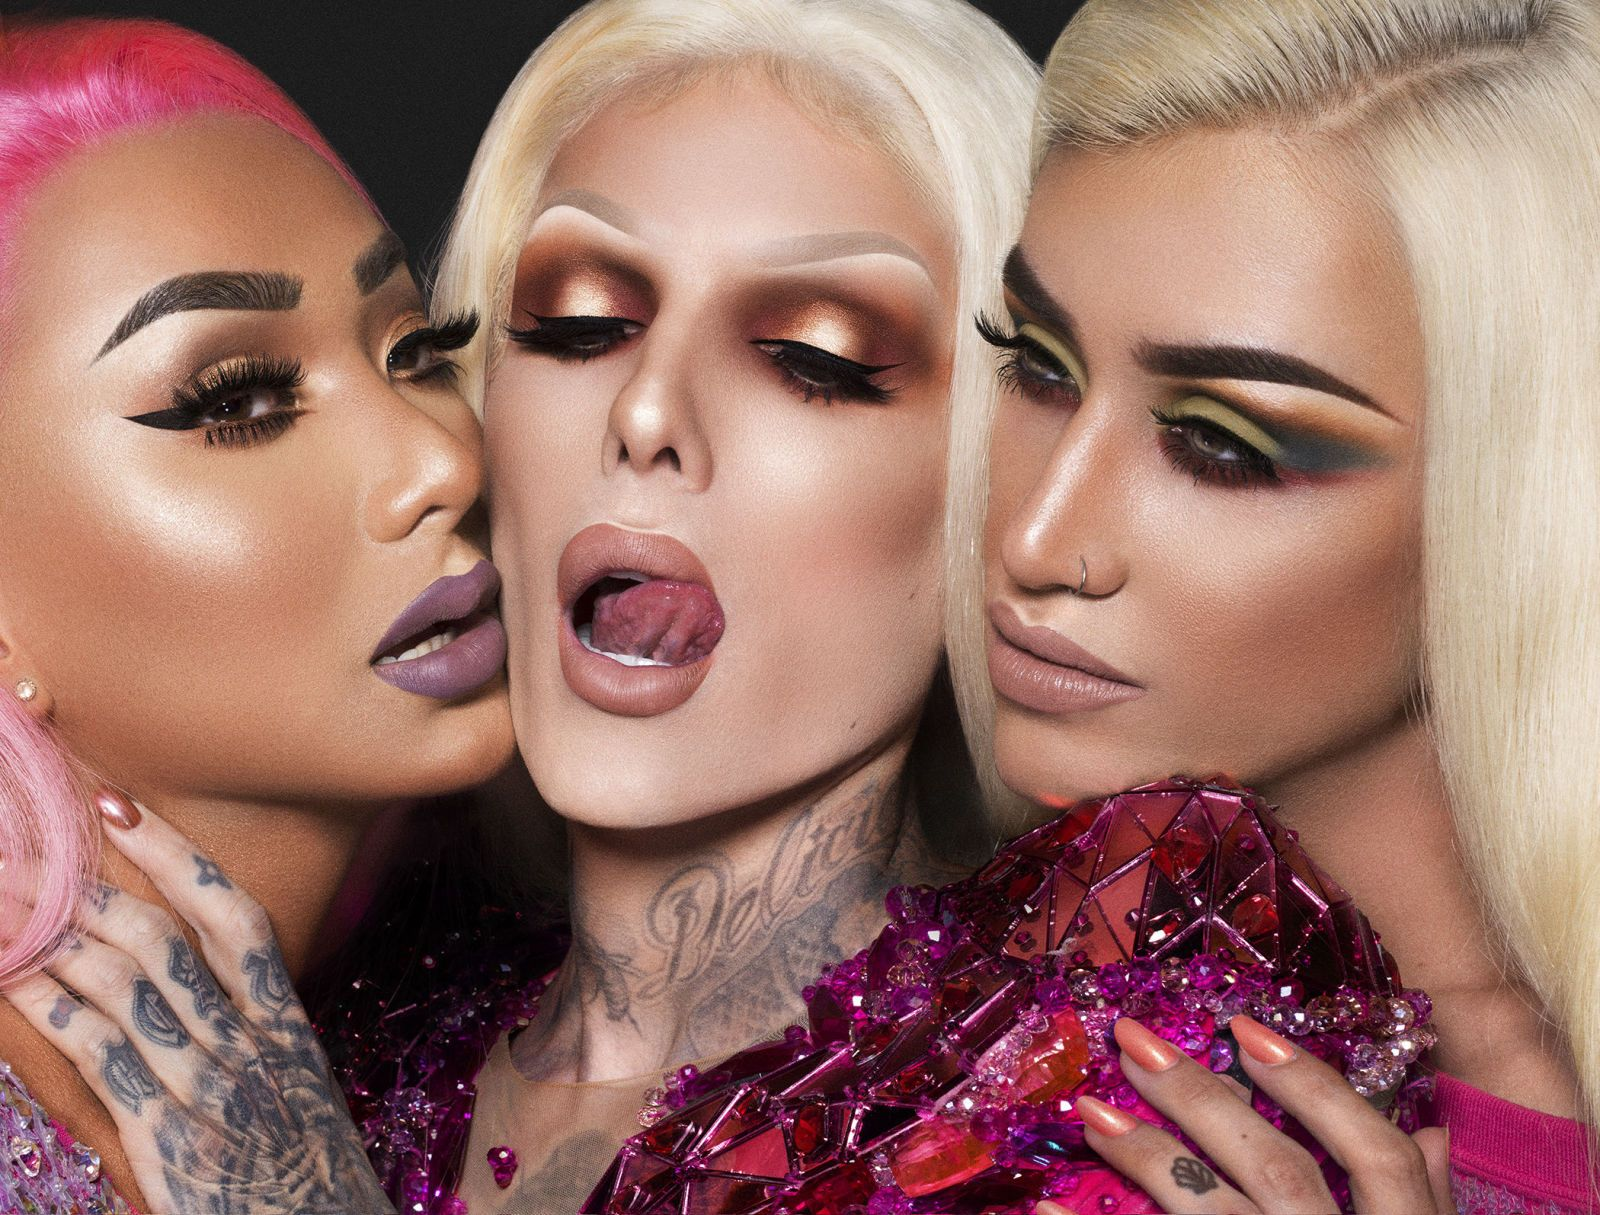 Jeffree Star is Launching an Androgynous Eyeshadow Palette